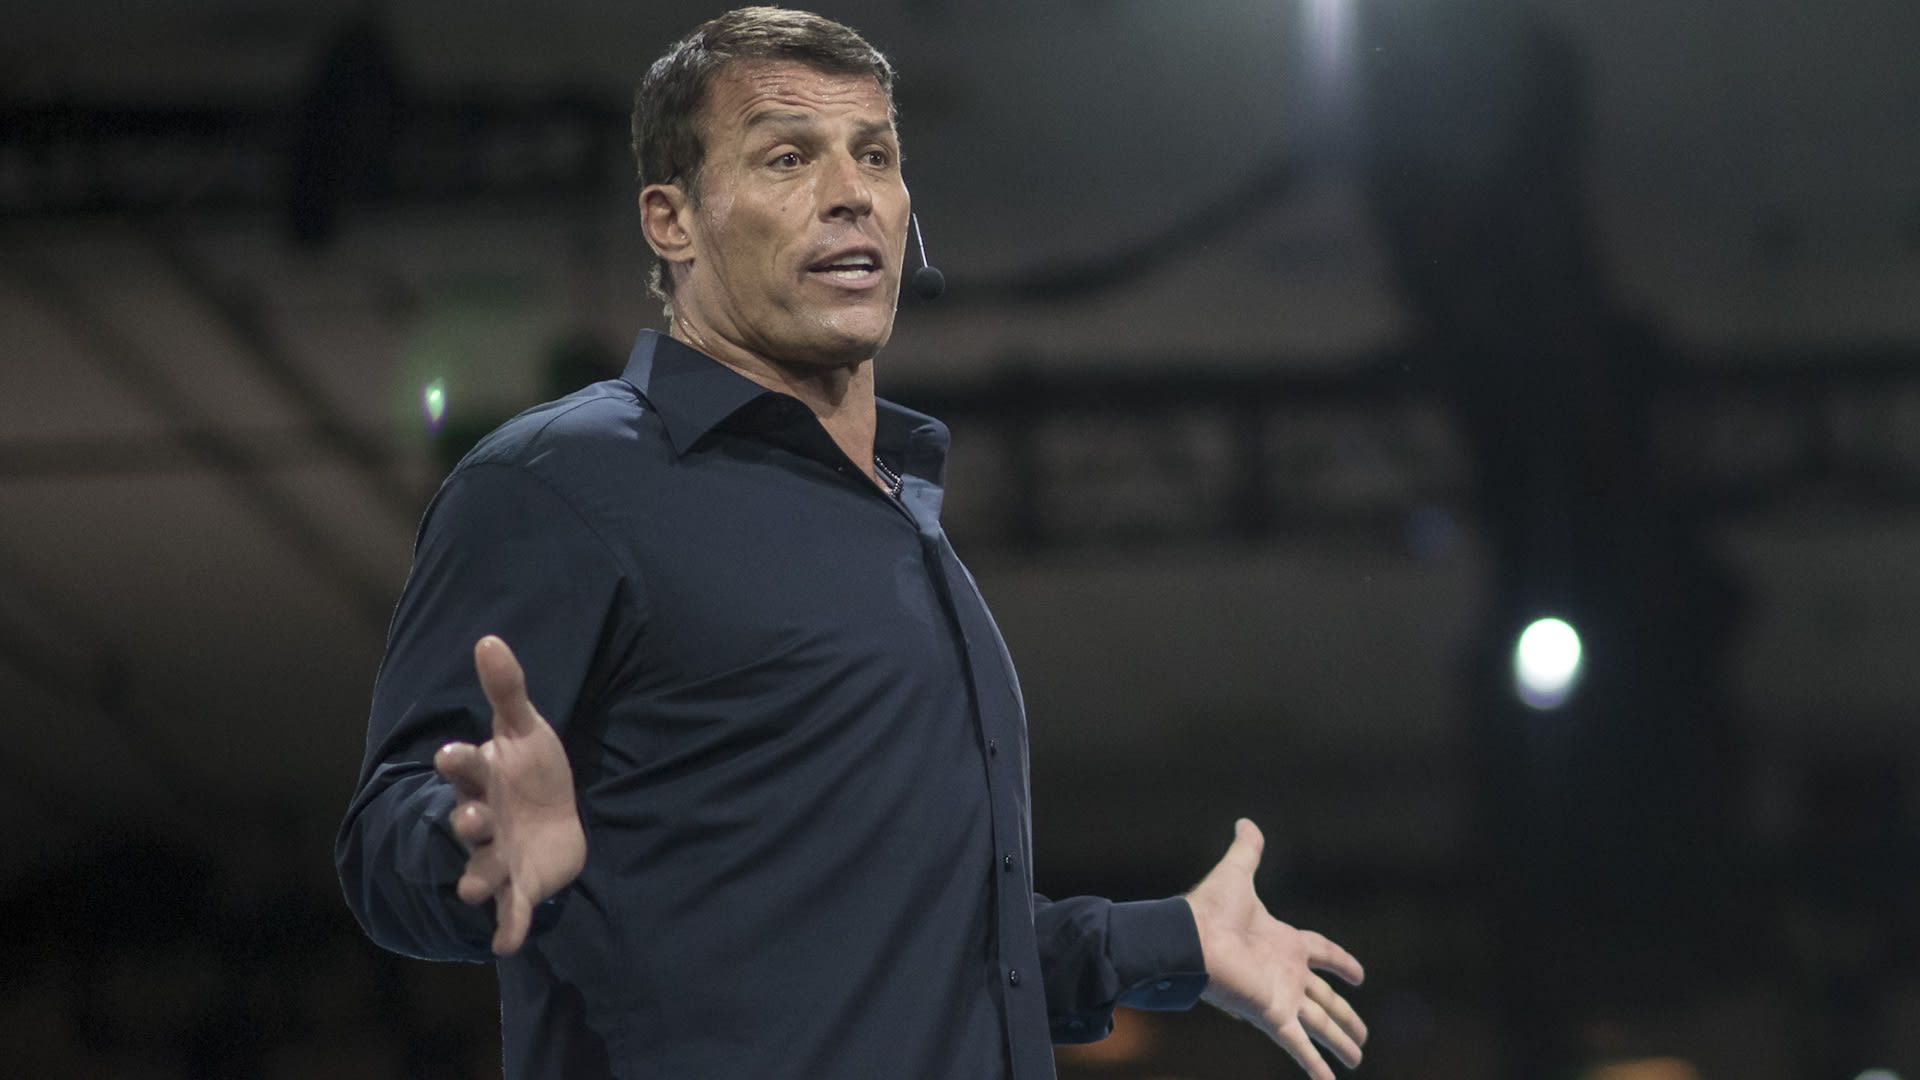 Even more women have accused tony robbins of sexual misconduct